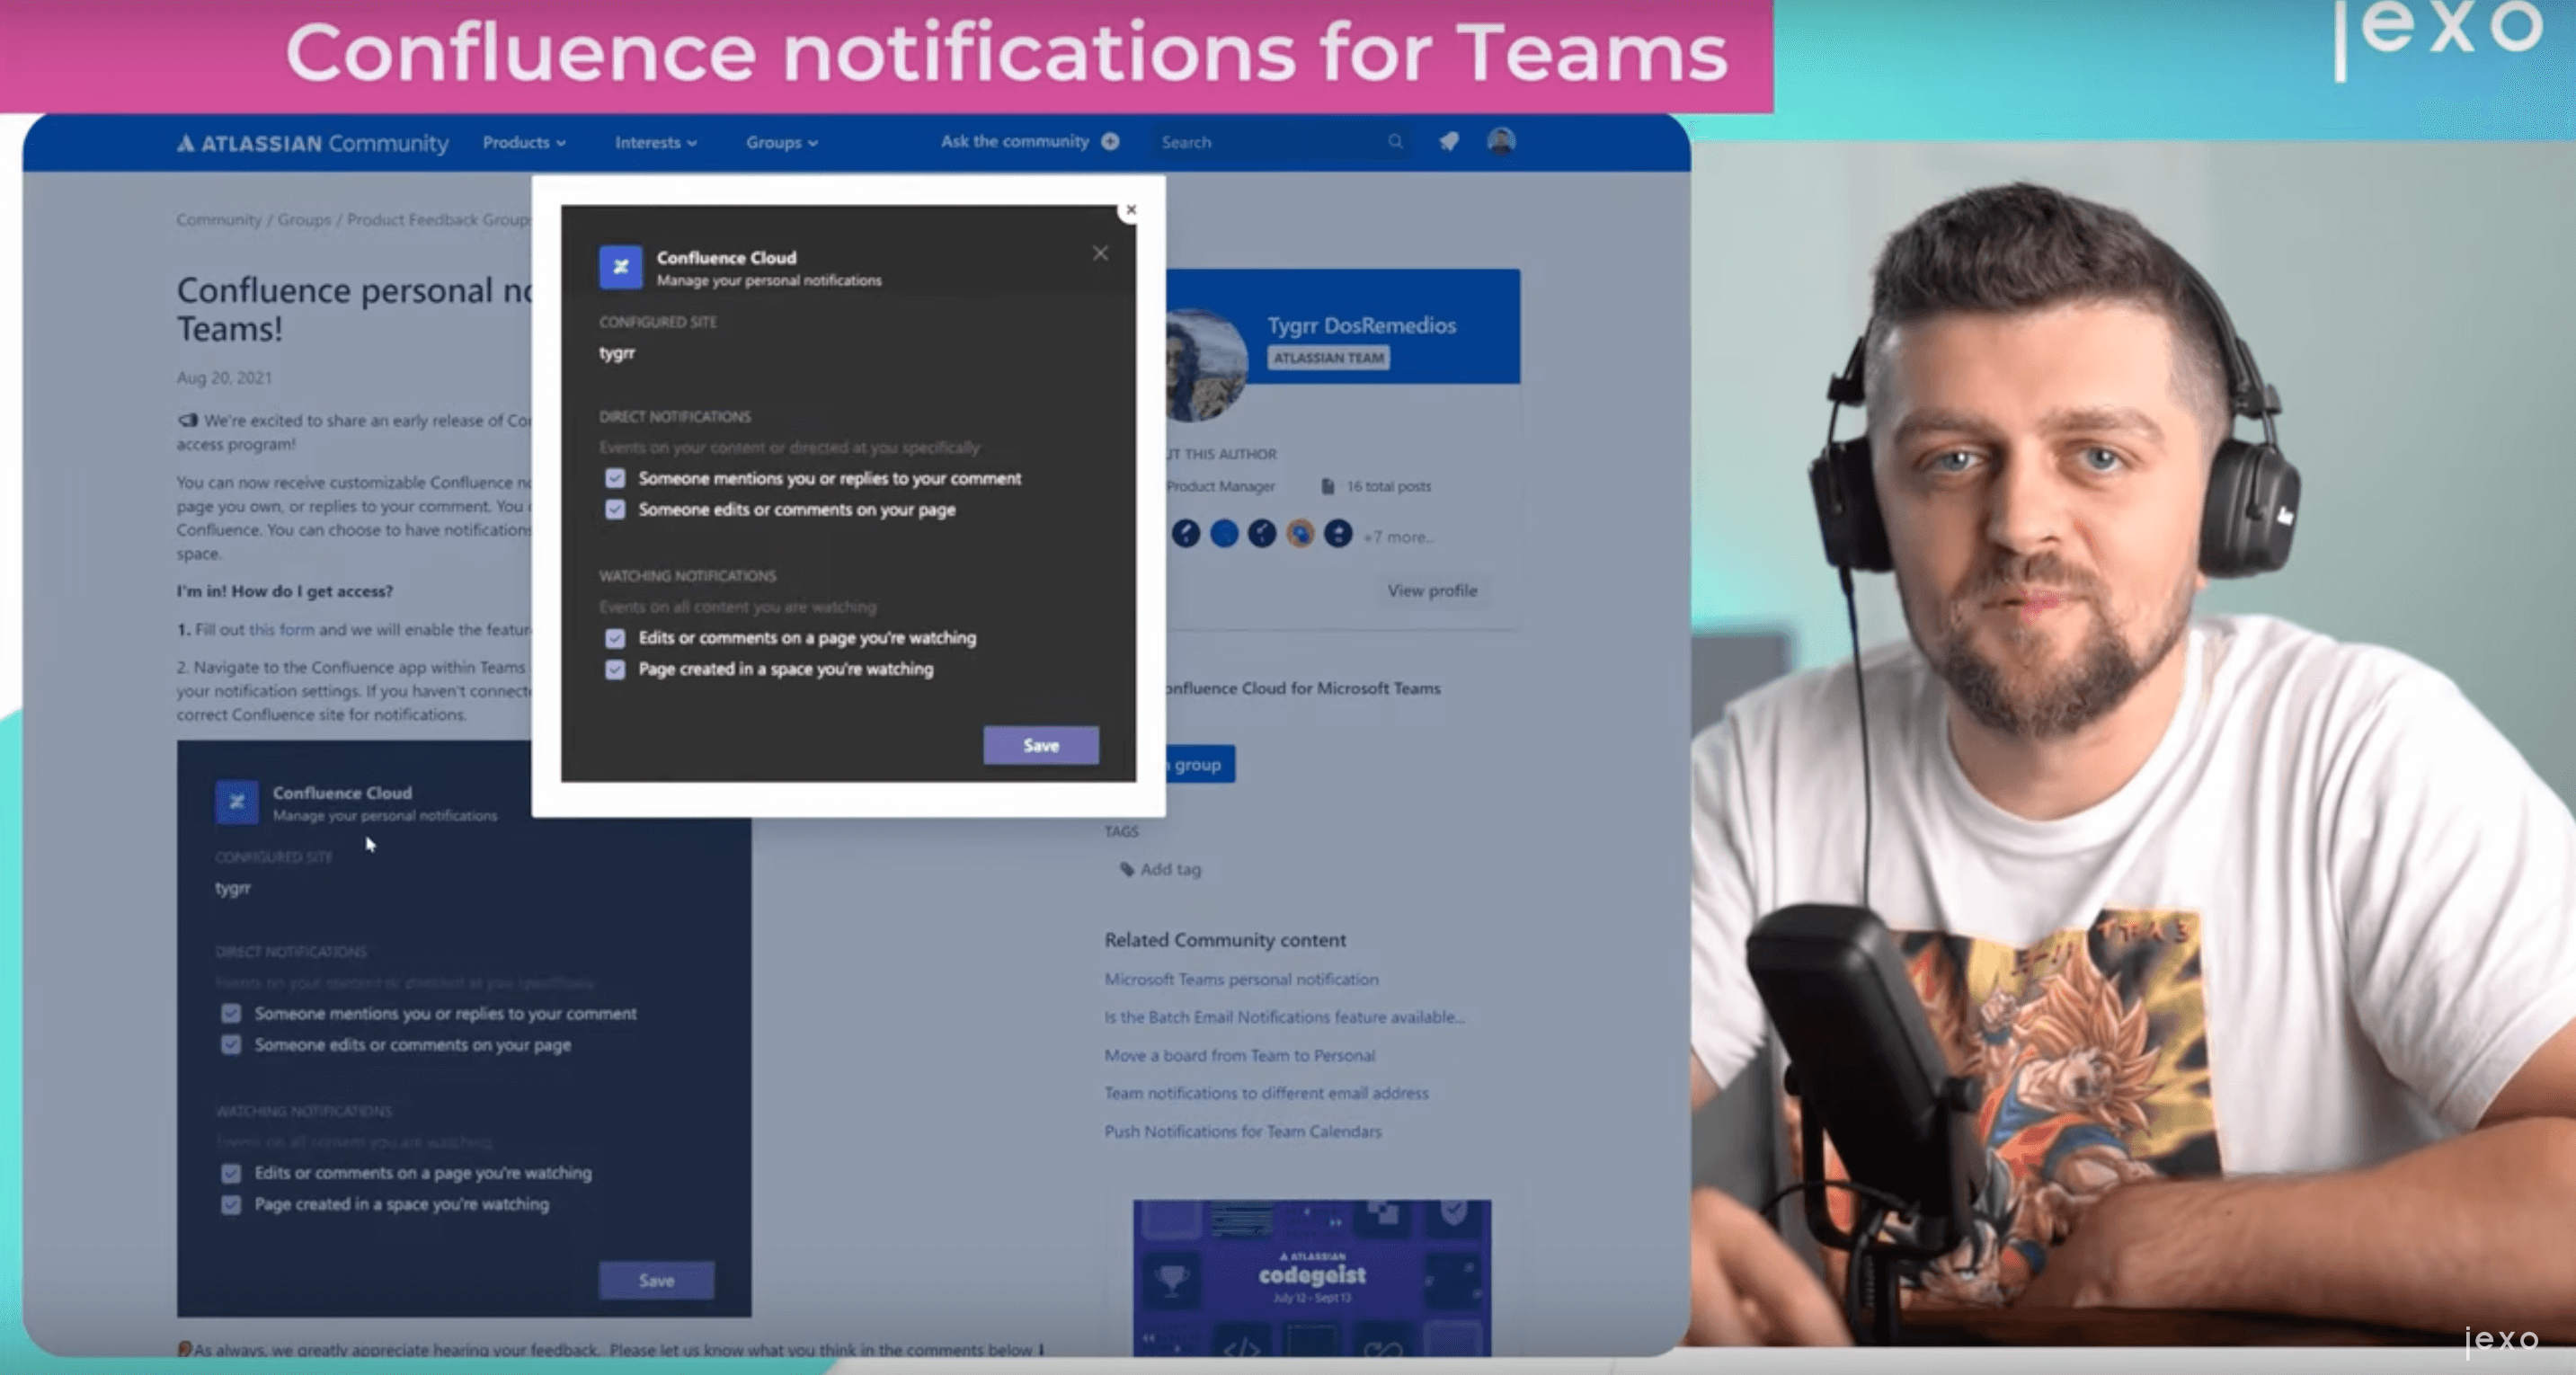 Atlassian news: Confluence notifications for Teams are in Beta!